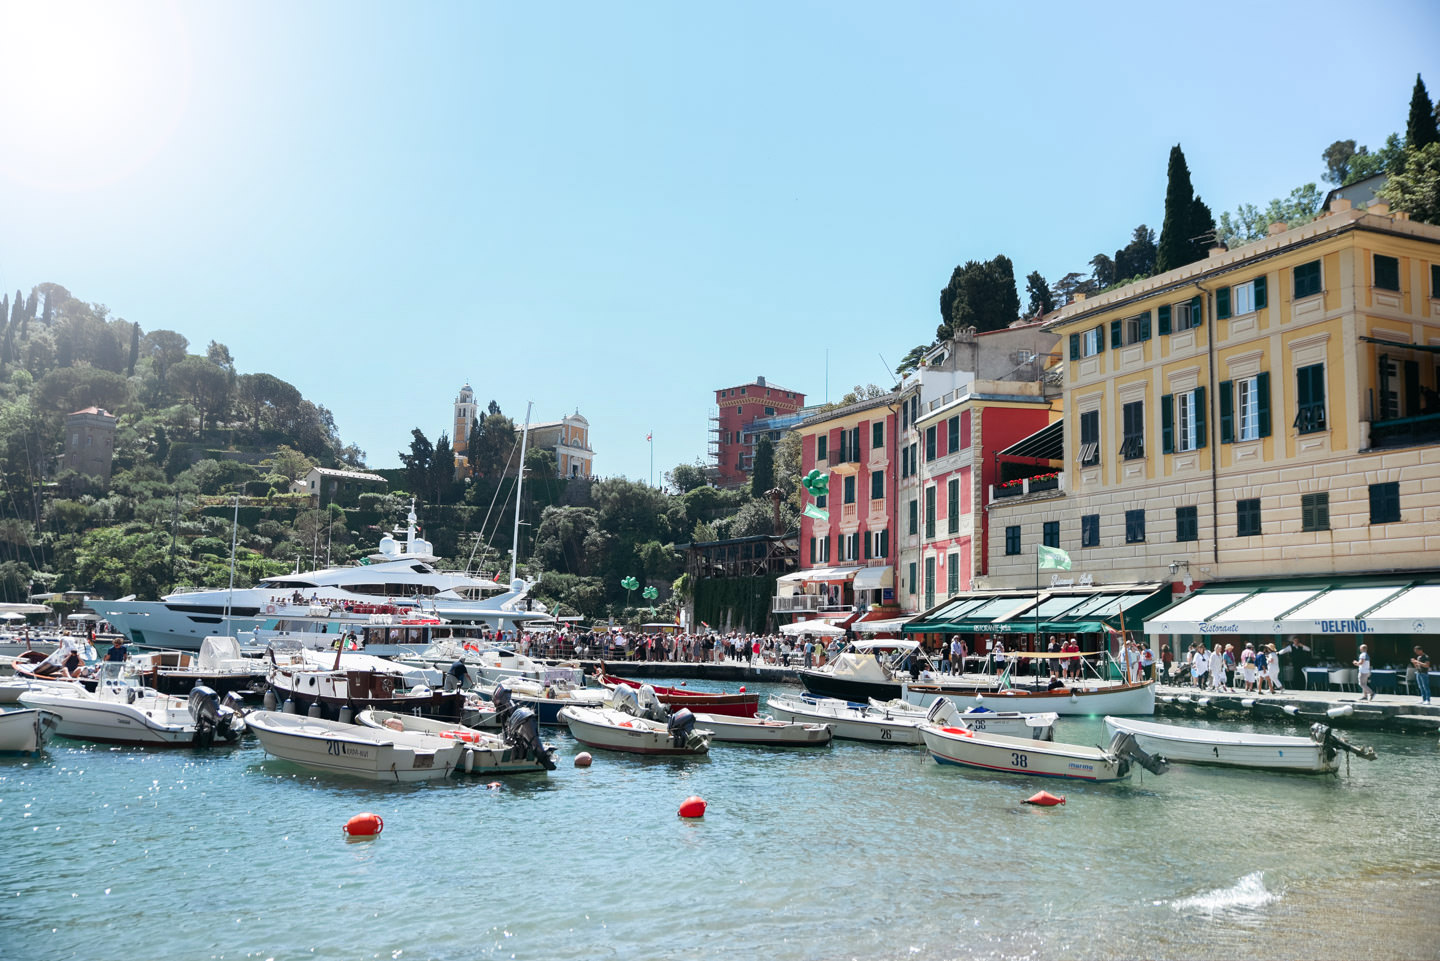 Blog-Mode-And-The-City-Lifestyle-Italie-Portofino-Belmond-Hotel-5 copie